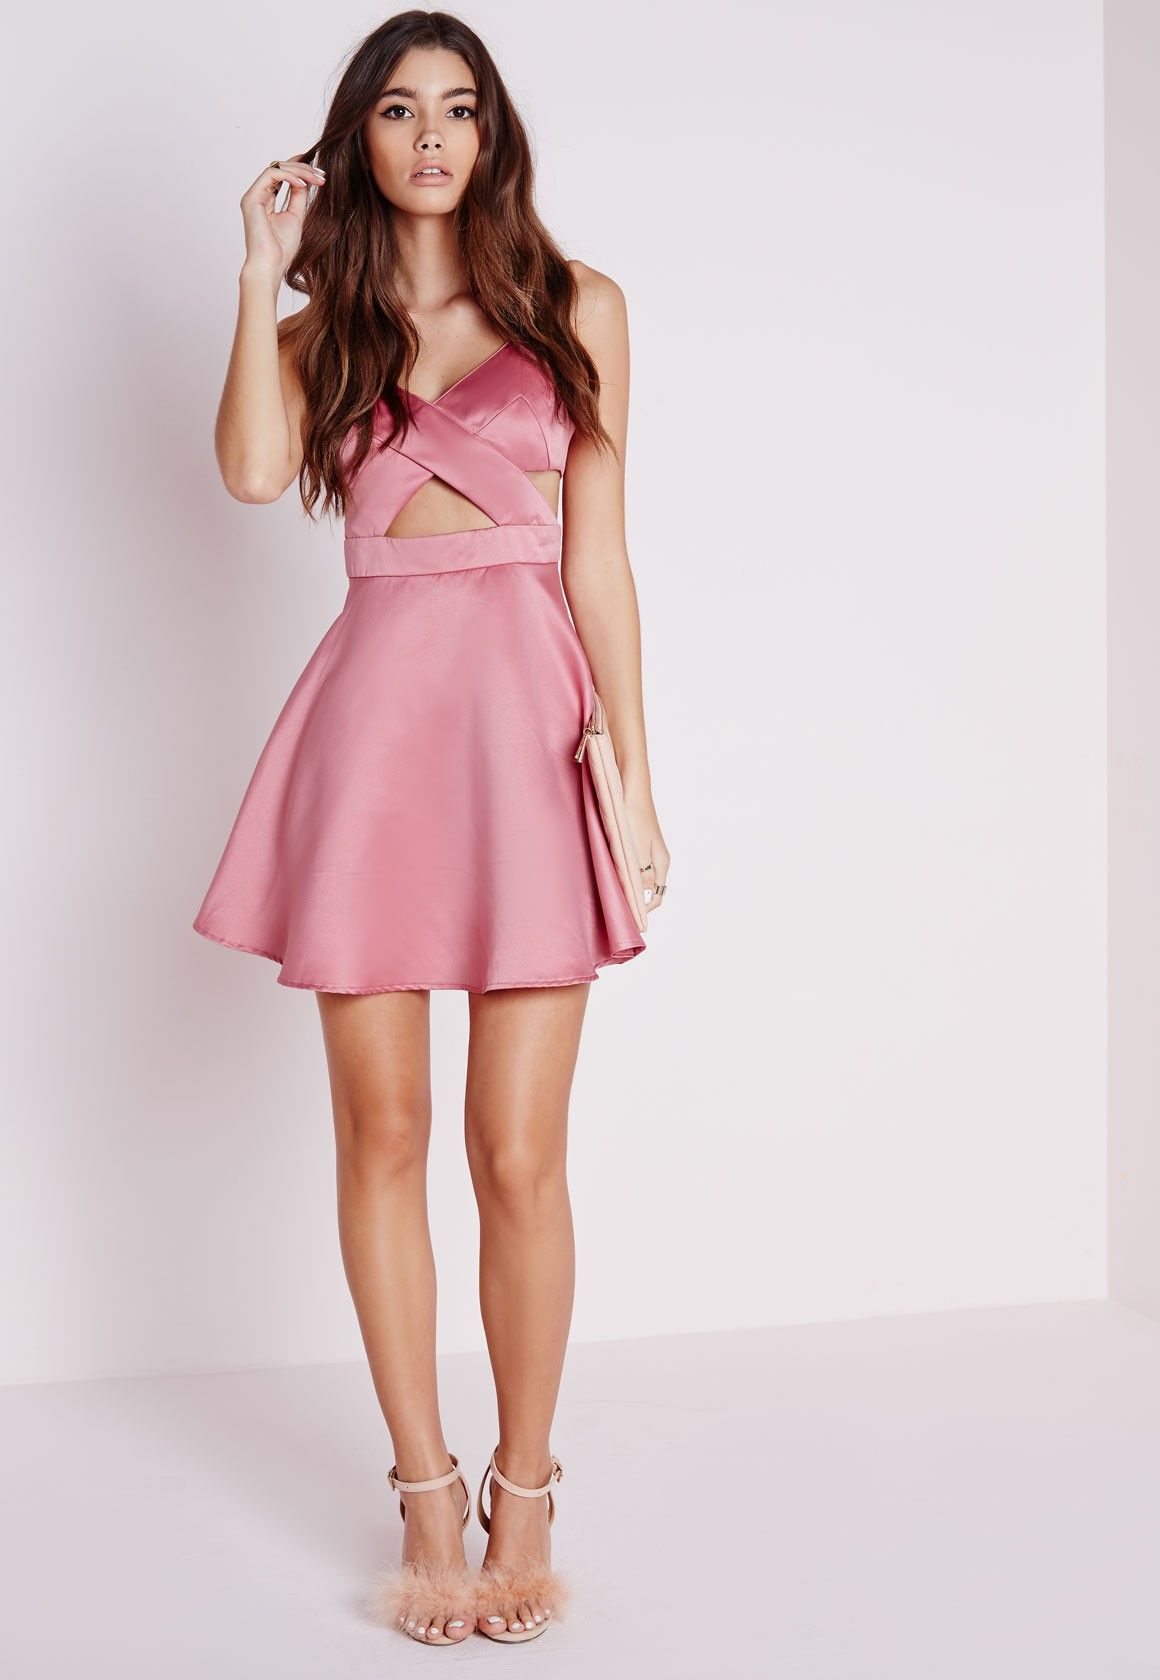 c4cde28d4a Missguided - Satin Cut Out Skater Dress Dusky Pink